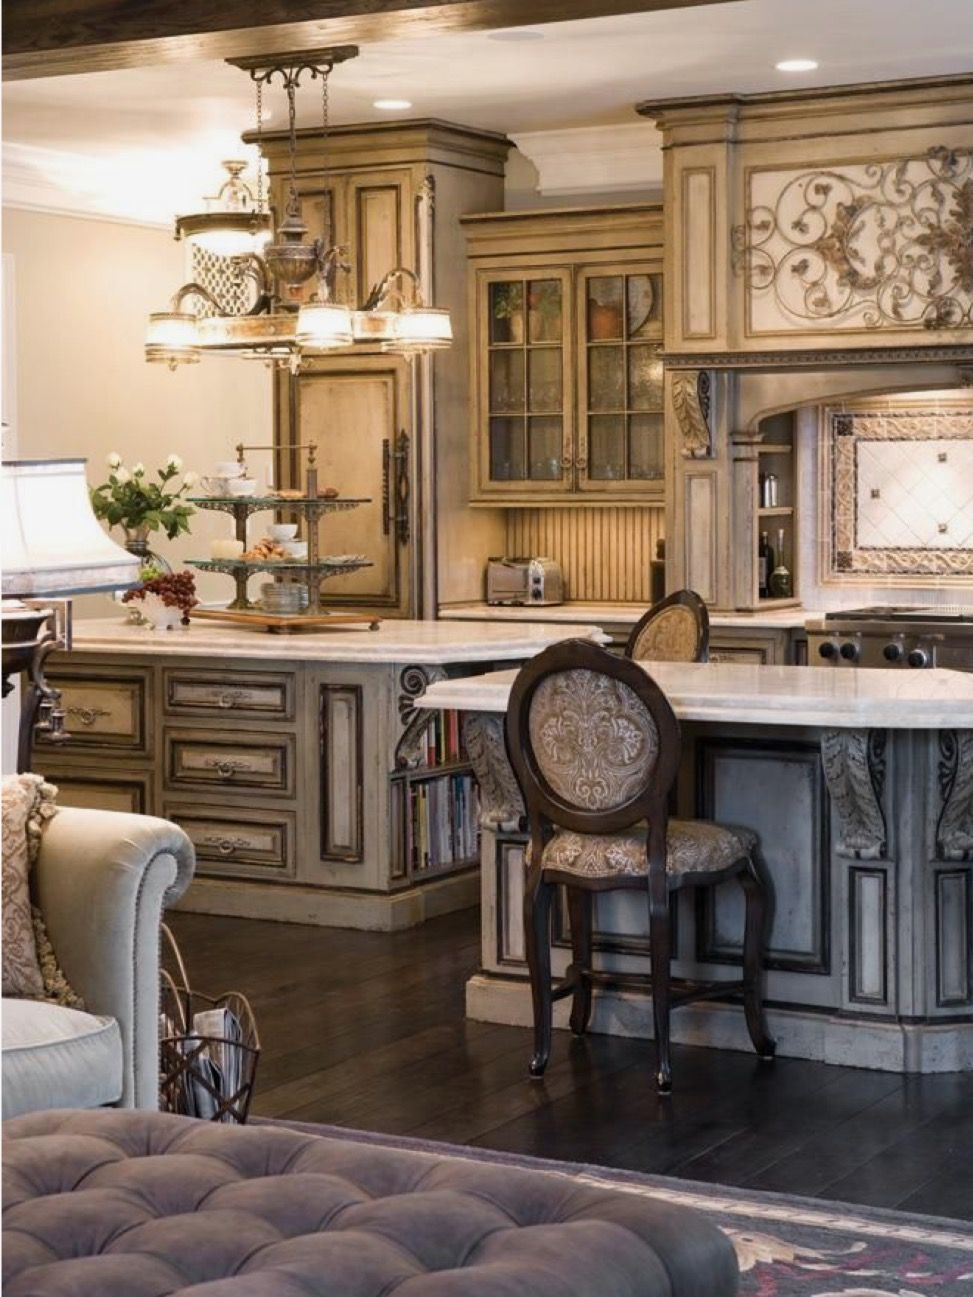 furniture with specifications pantry best cabinets craftmade cabinet maid kitchen kraft craftmaid a kraftmaid shiloh reviews dimensions have